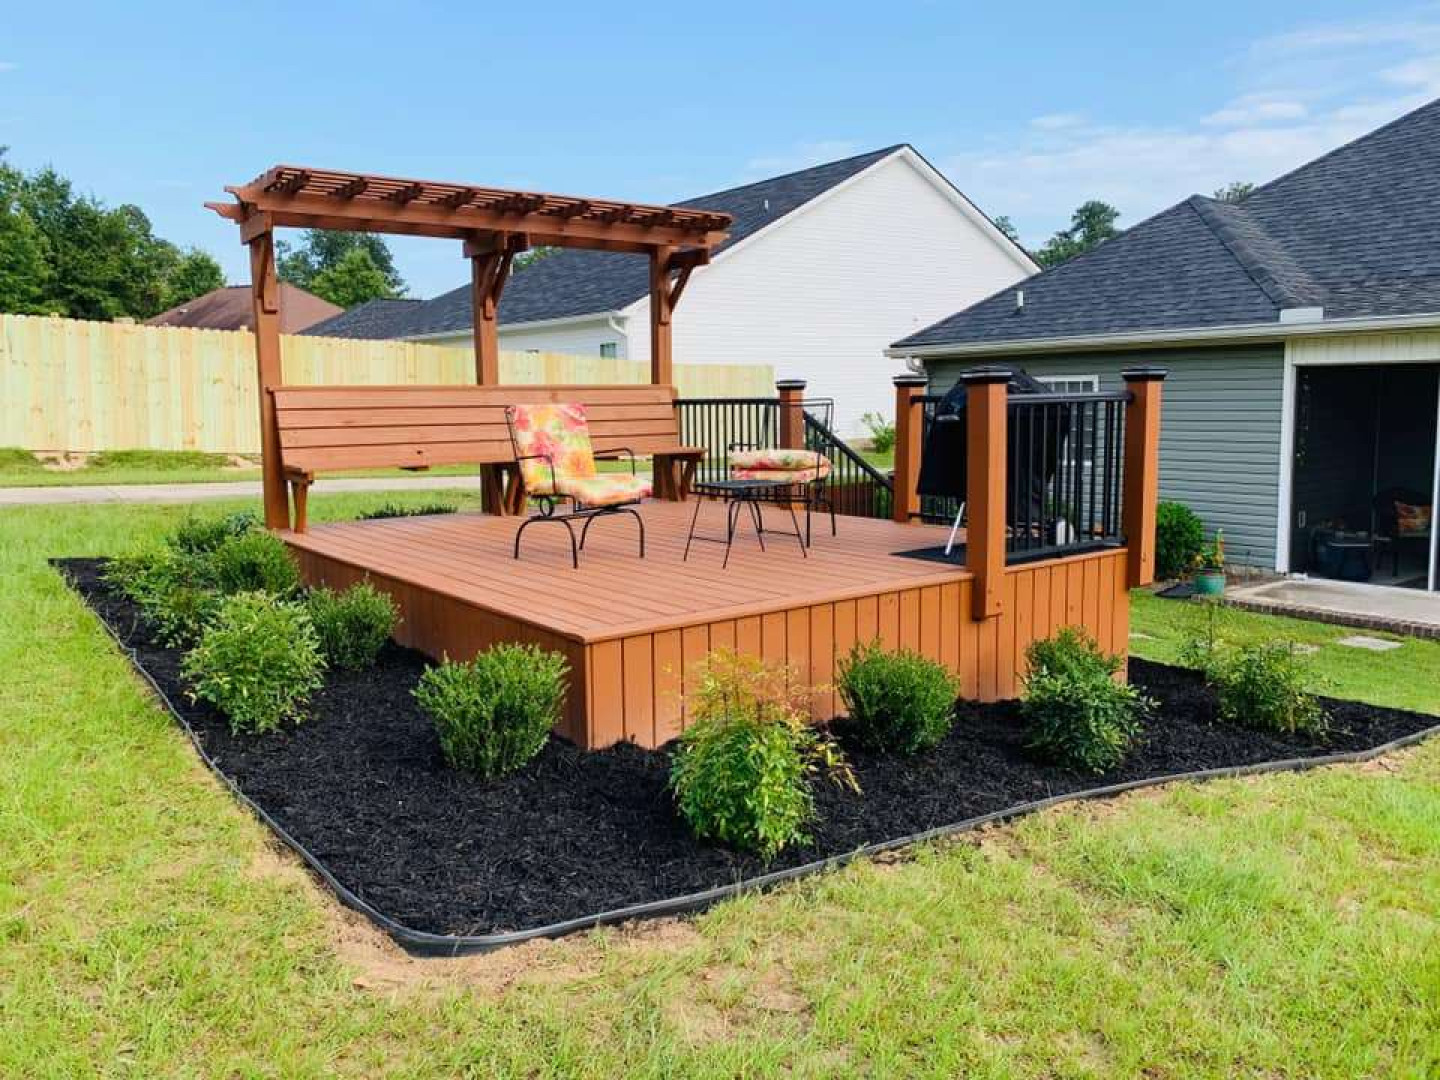 Discover how we can enhance your yard